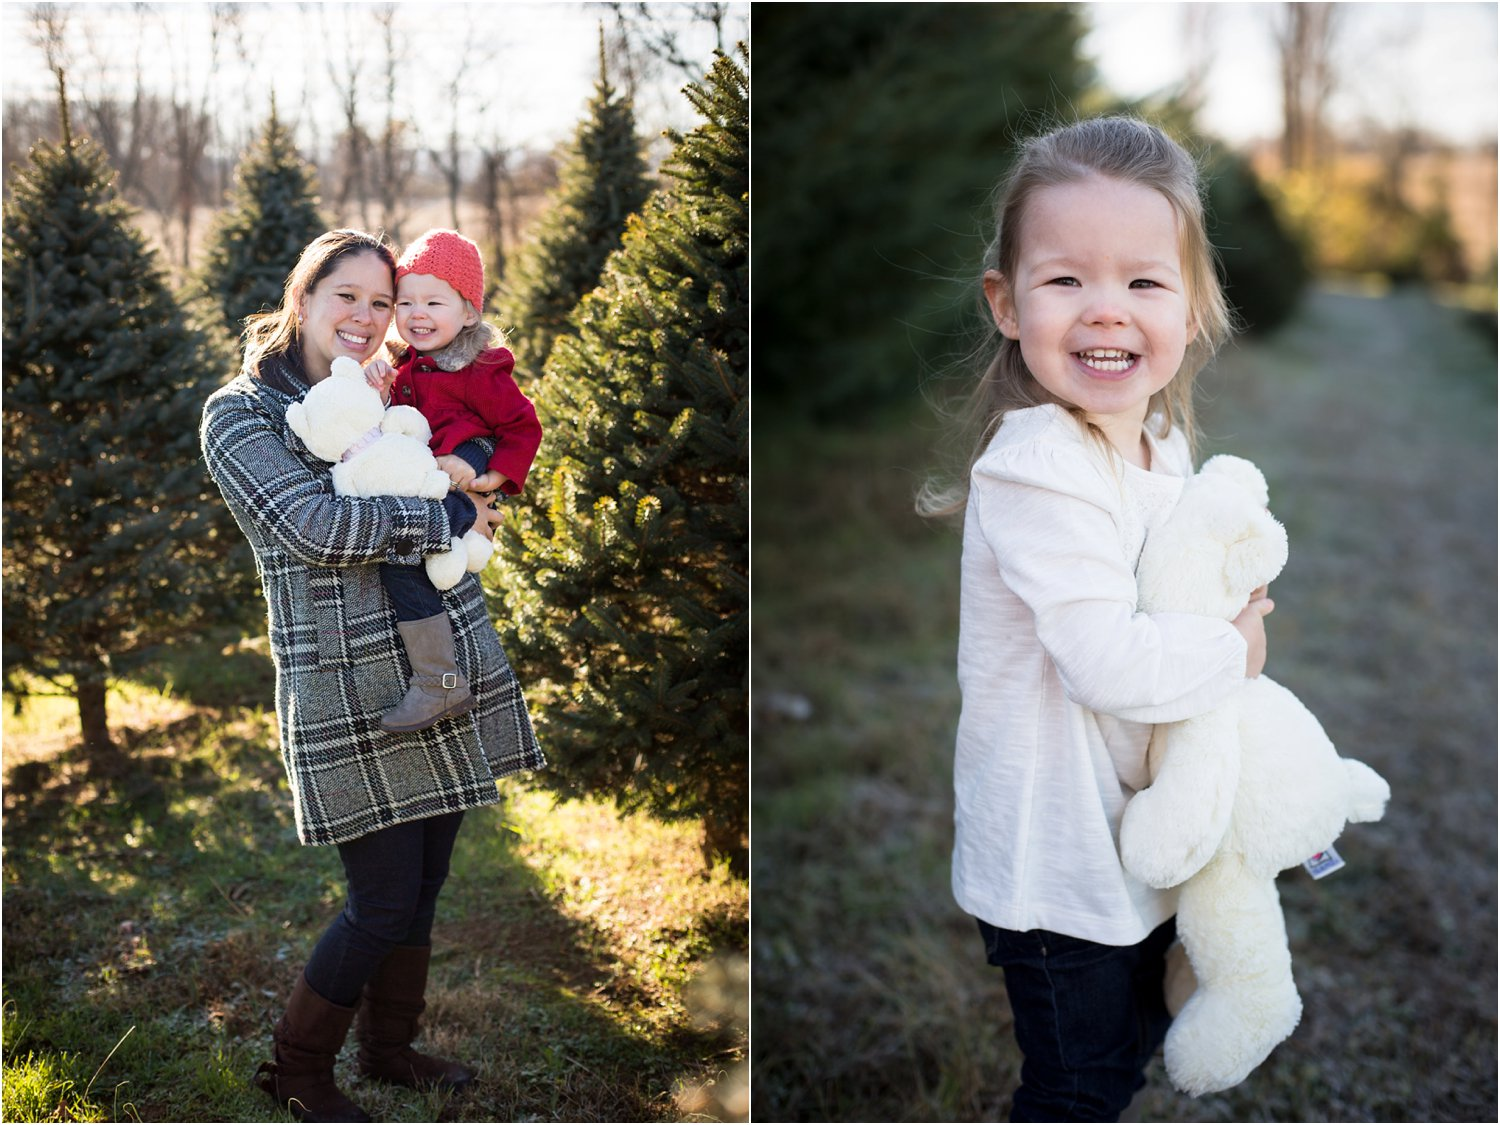 Moose_Apple_Chrismas_Tree_Farm_Family_Portraits_0020.jpg